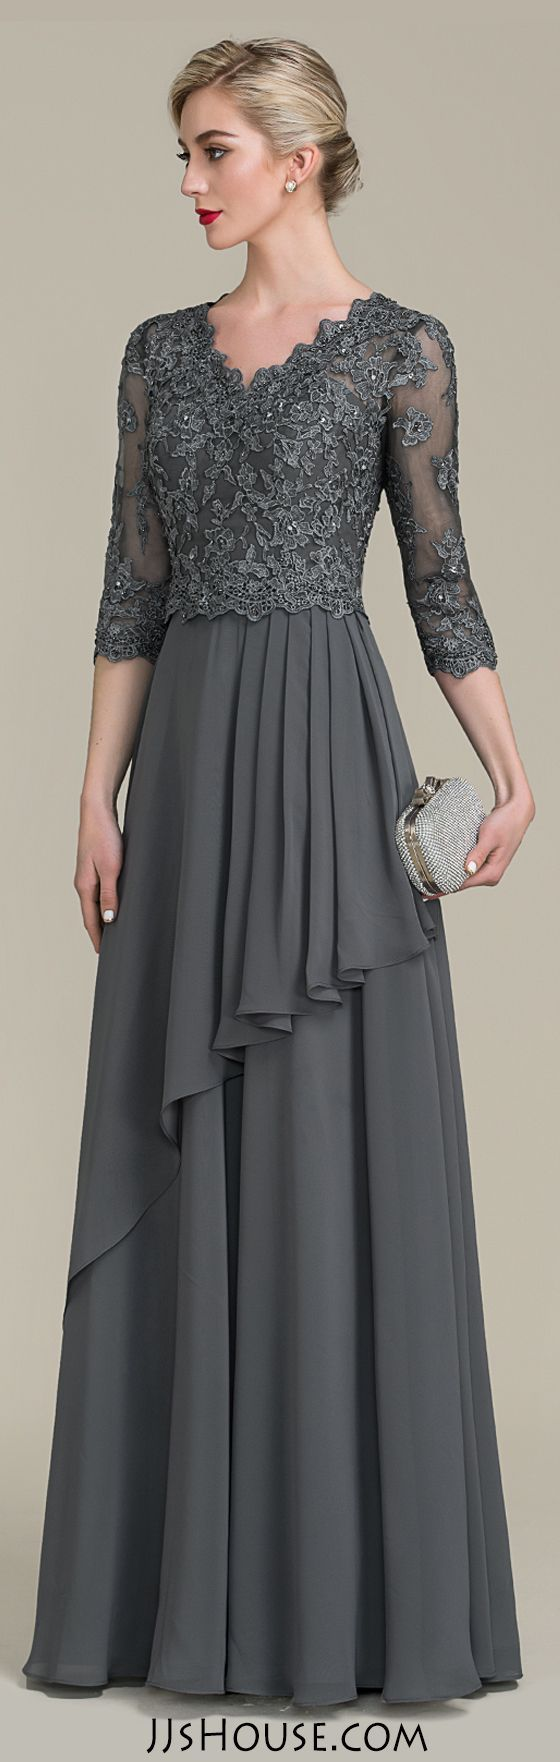 long length mother of the bride and groom dresses bride dresses